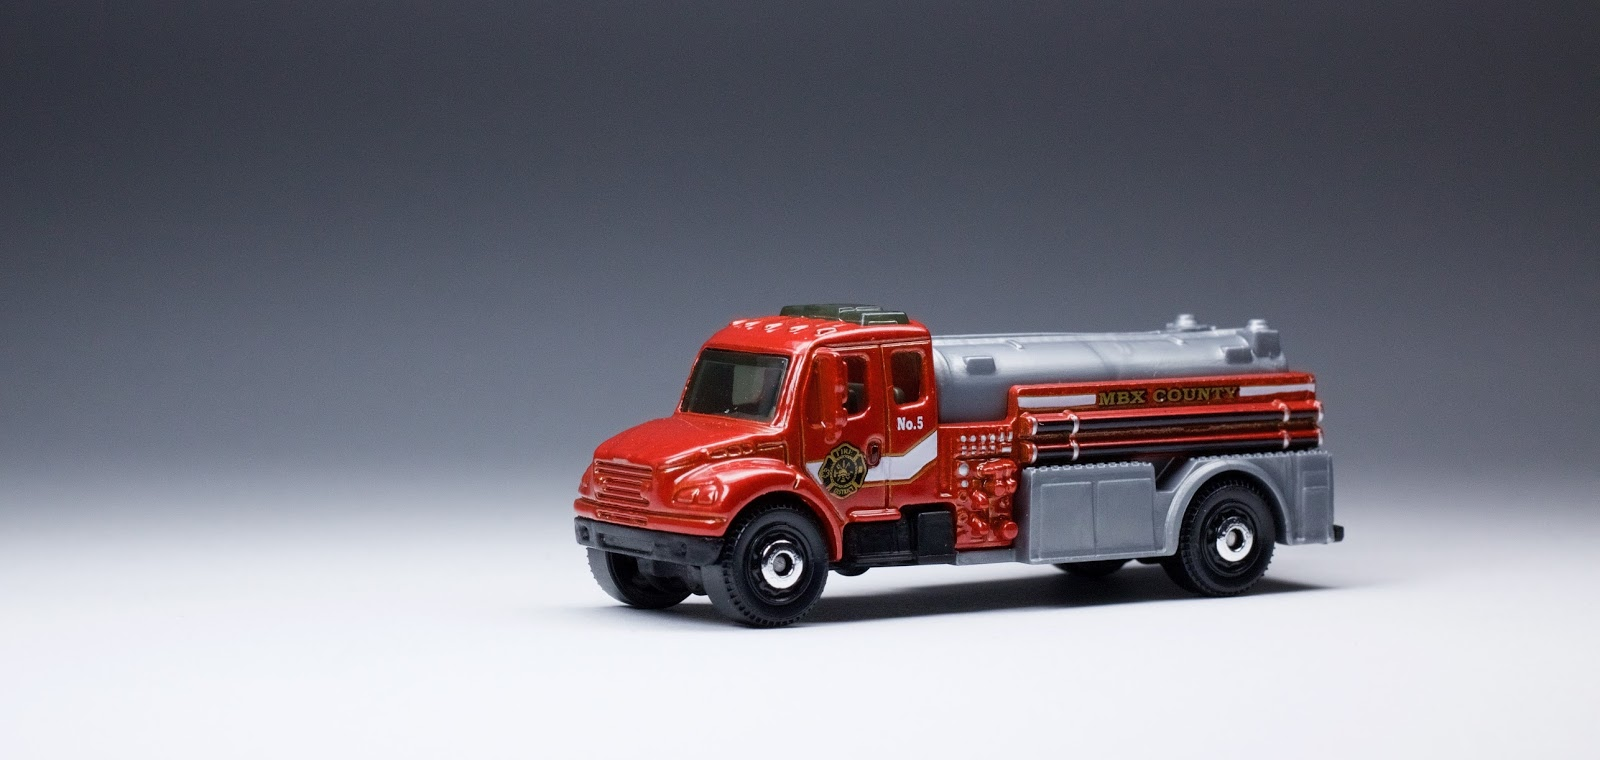 You can count on at least one new Matchbox Fire Truck each ...